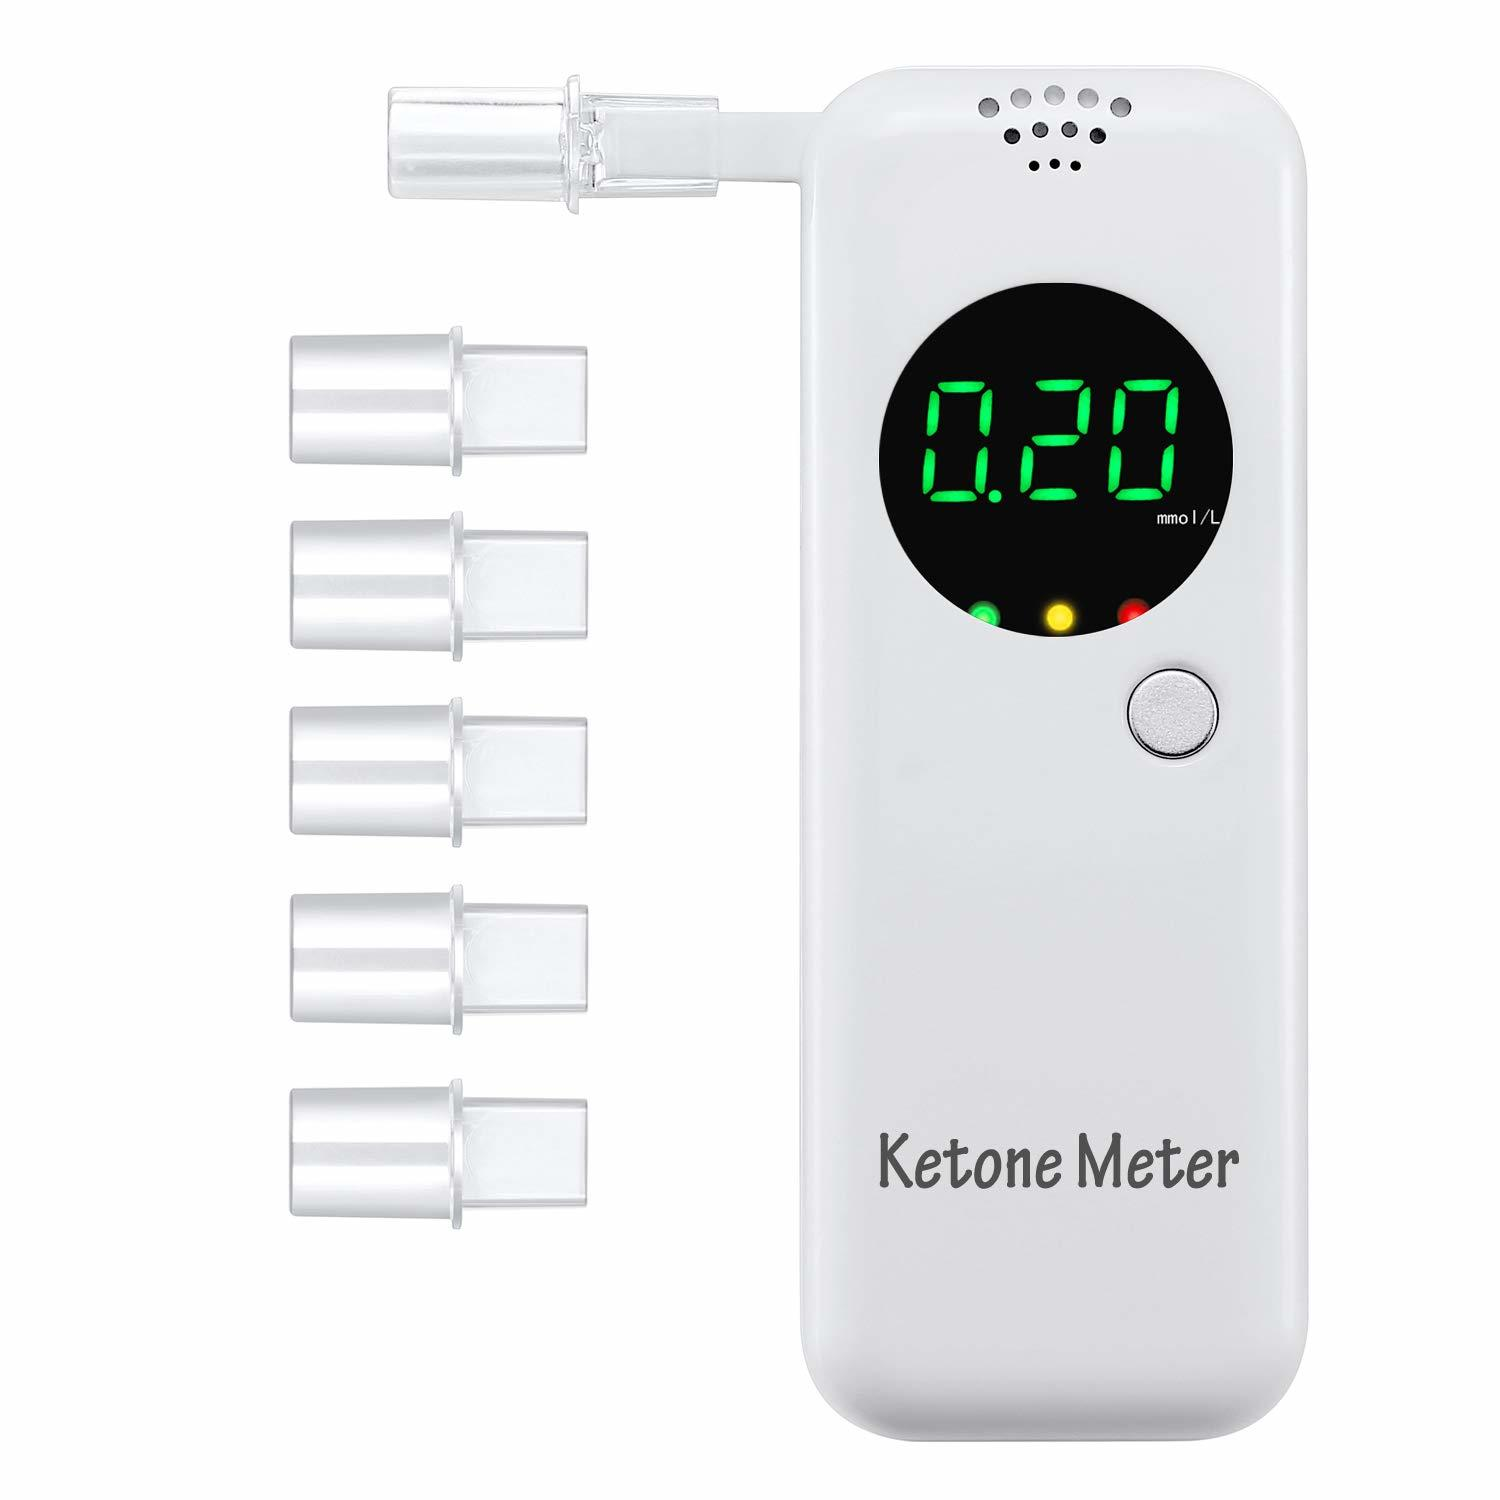 Ketone breath meters